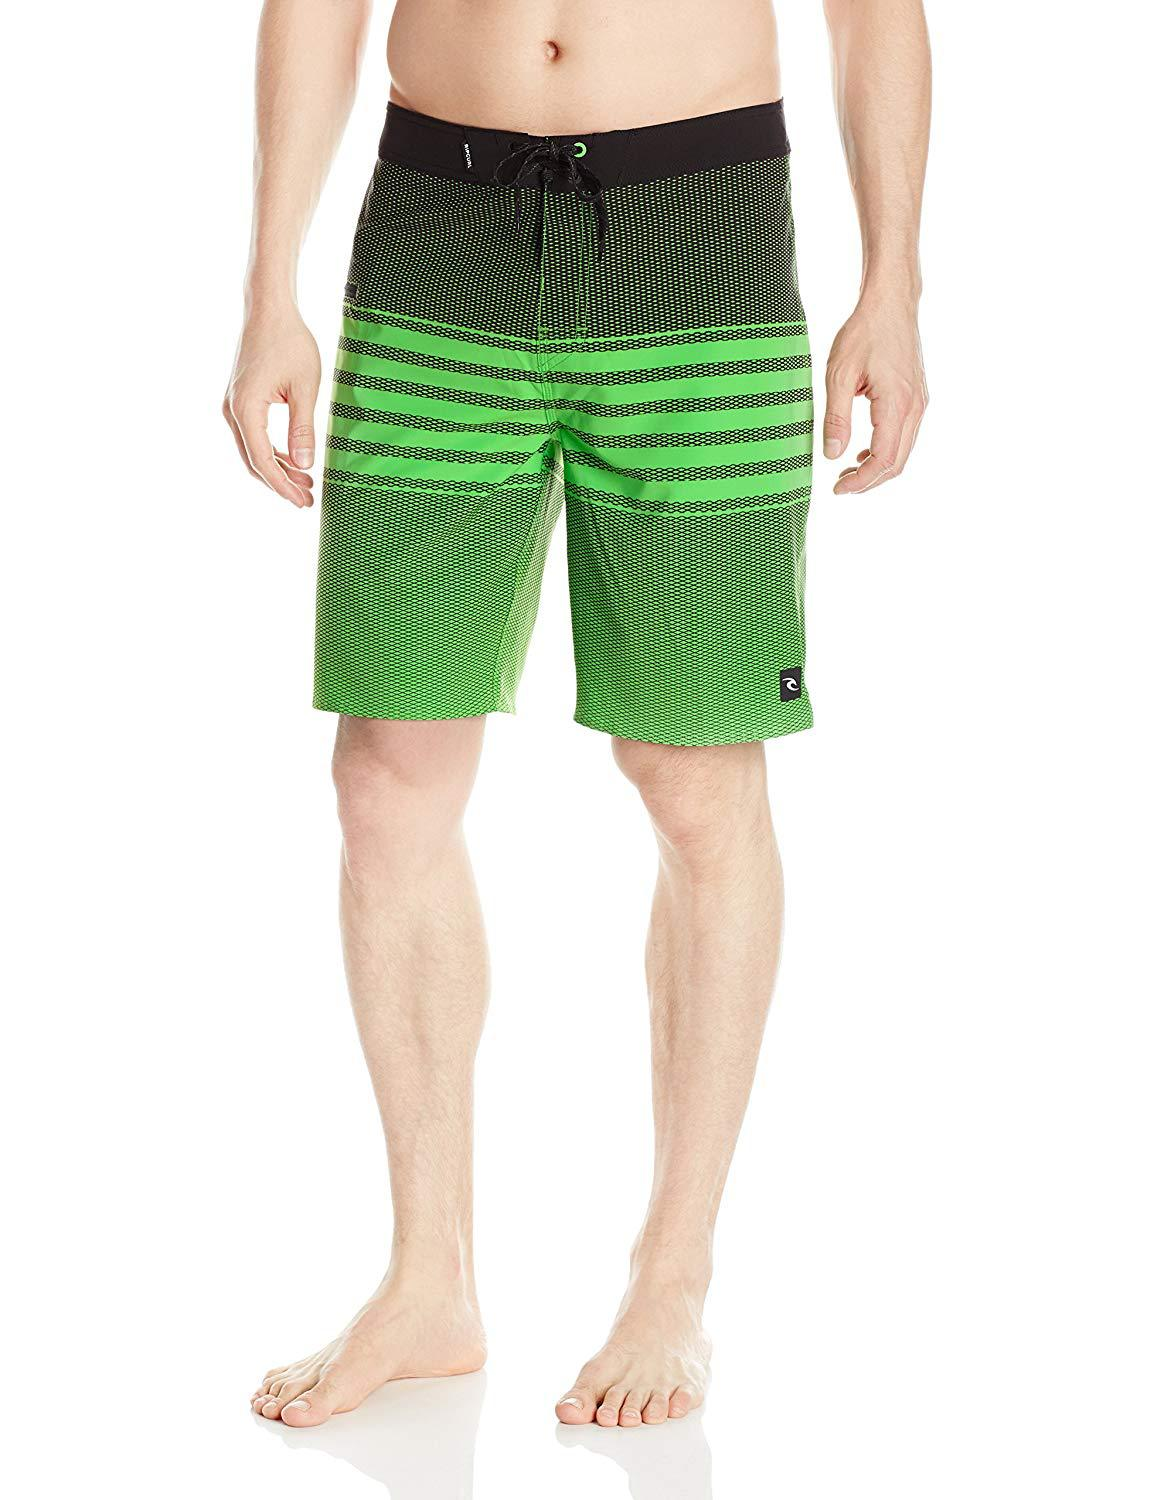 RipCurl Beach Shorts Men's Trousers Western Style Men's Sports Boardshort Short Shorts